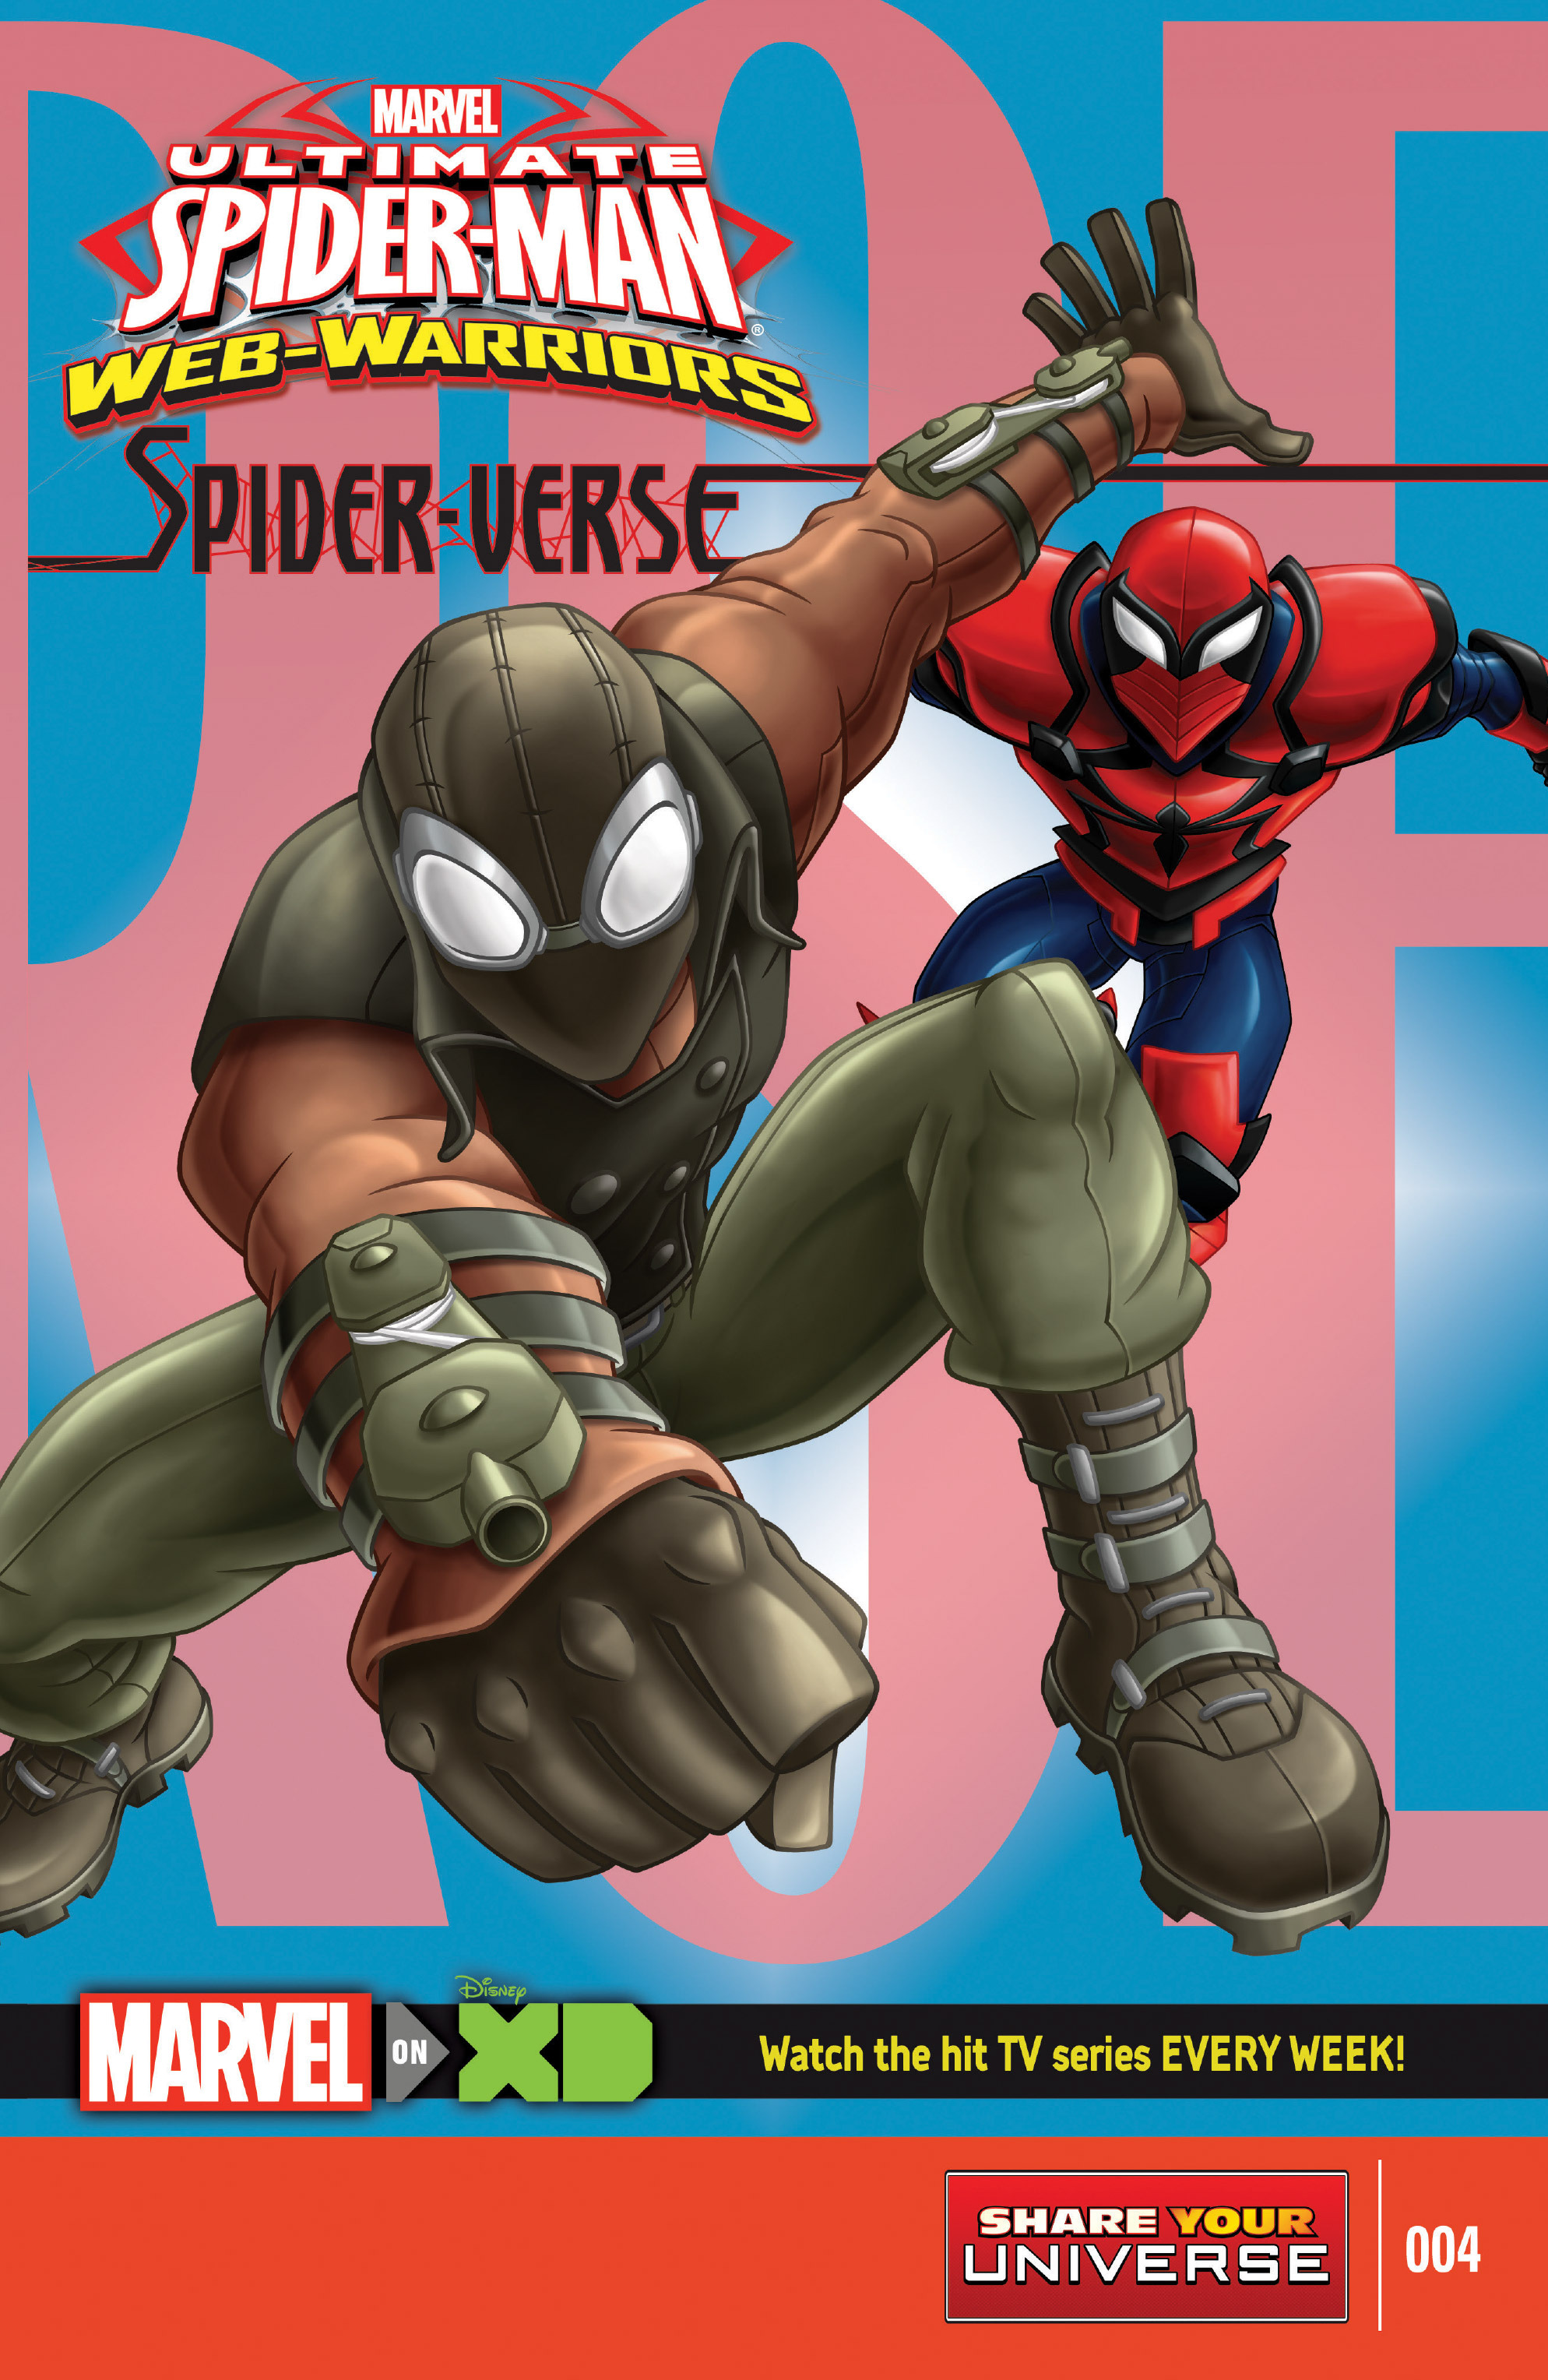 Pin by Arkhamnatic Arts on Marvel Comics | Ultimate